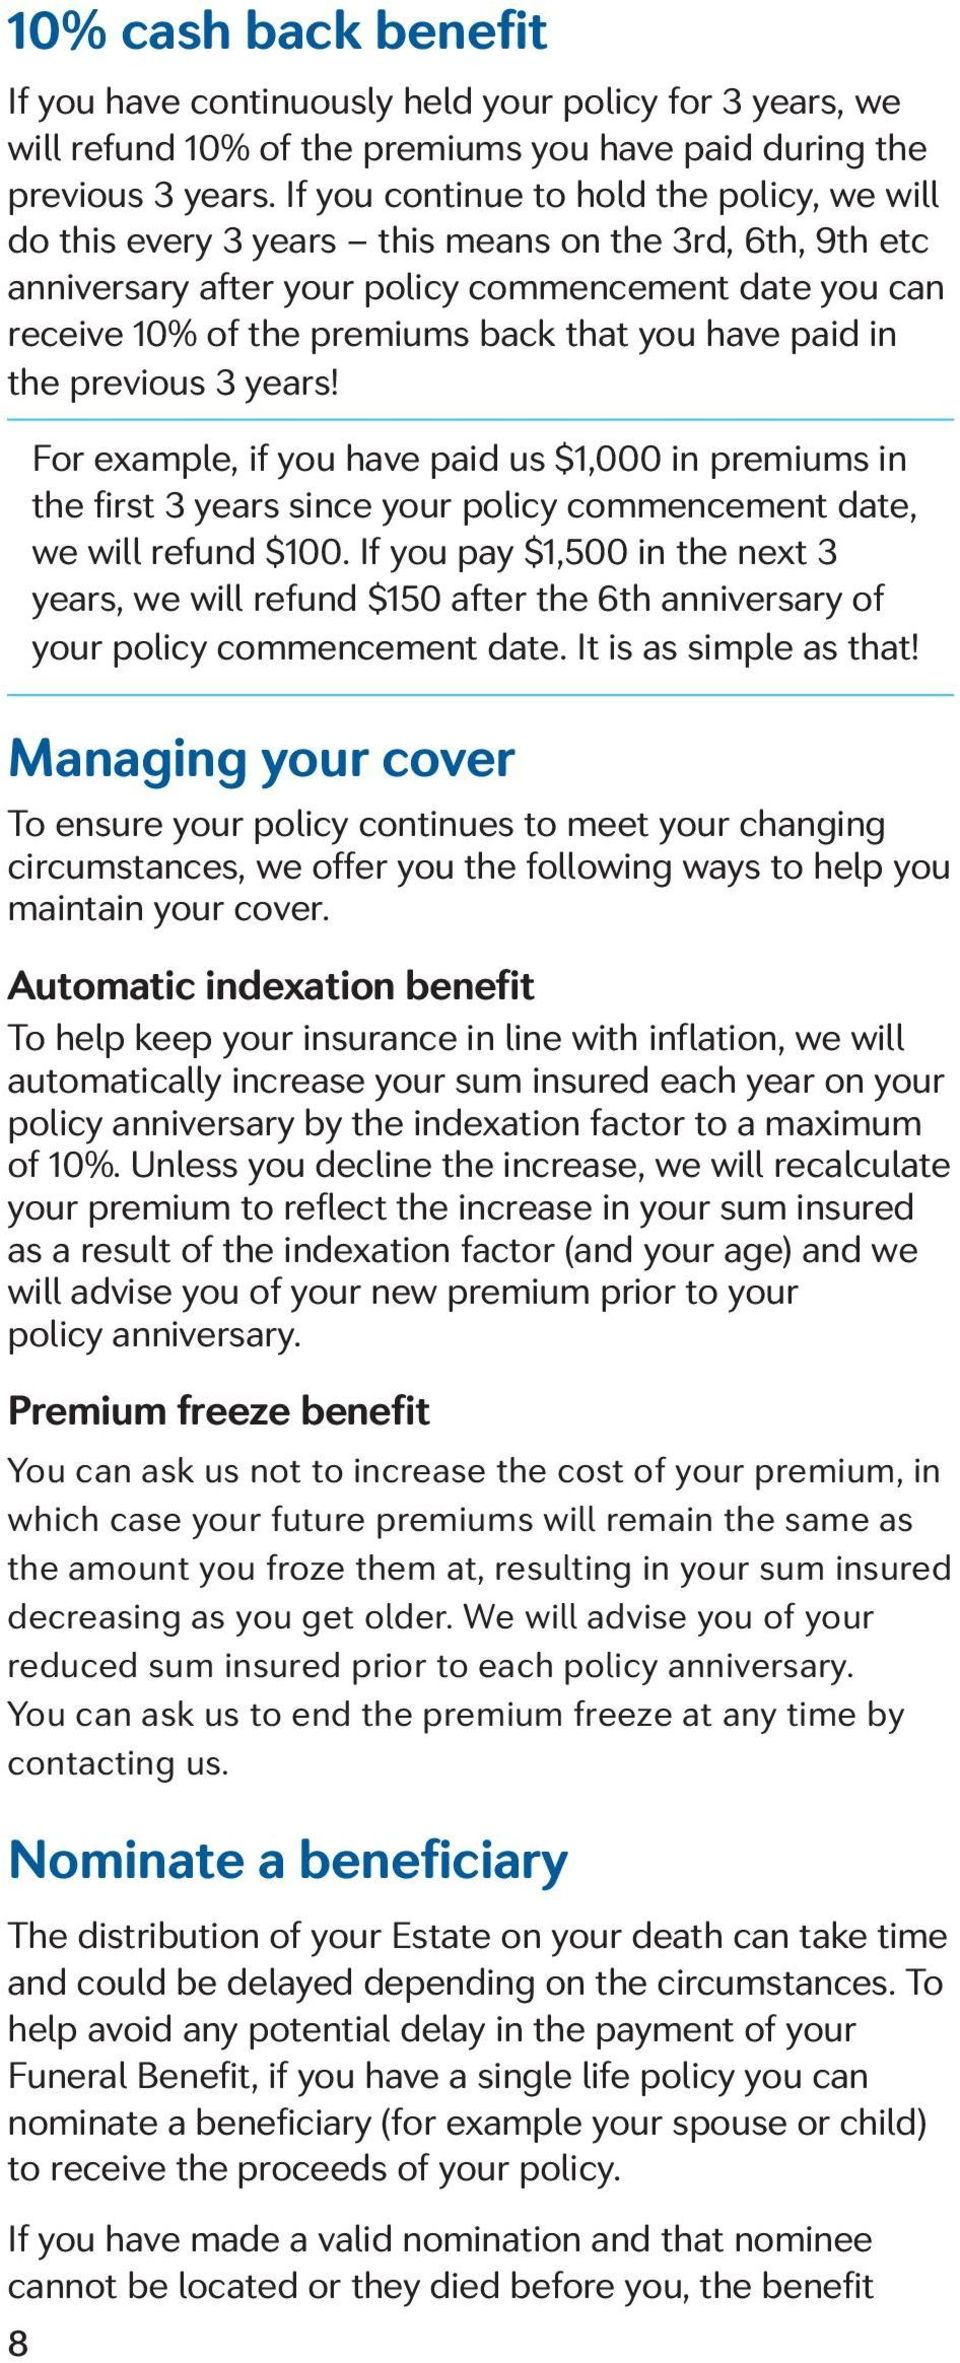 have paid in the previous 3 years! 8 For example, if you have paid us $1,000 in premiums in the first 3 years since your policy commencement date, we will refund $100.